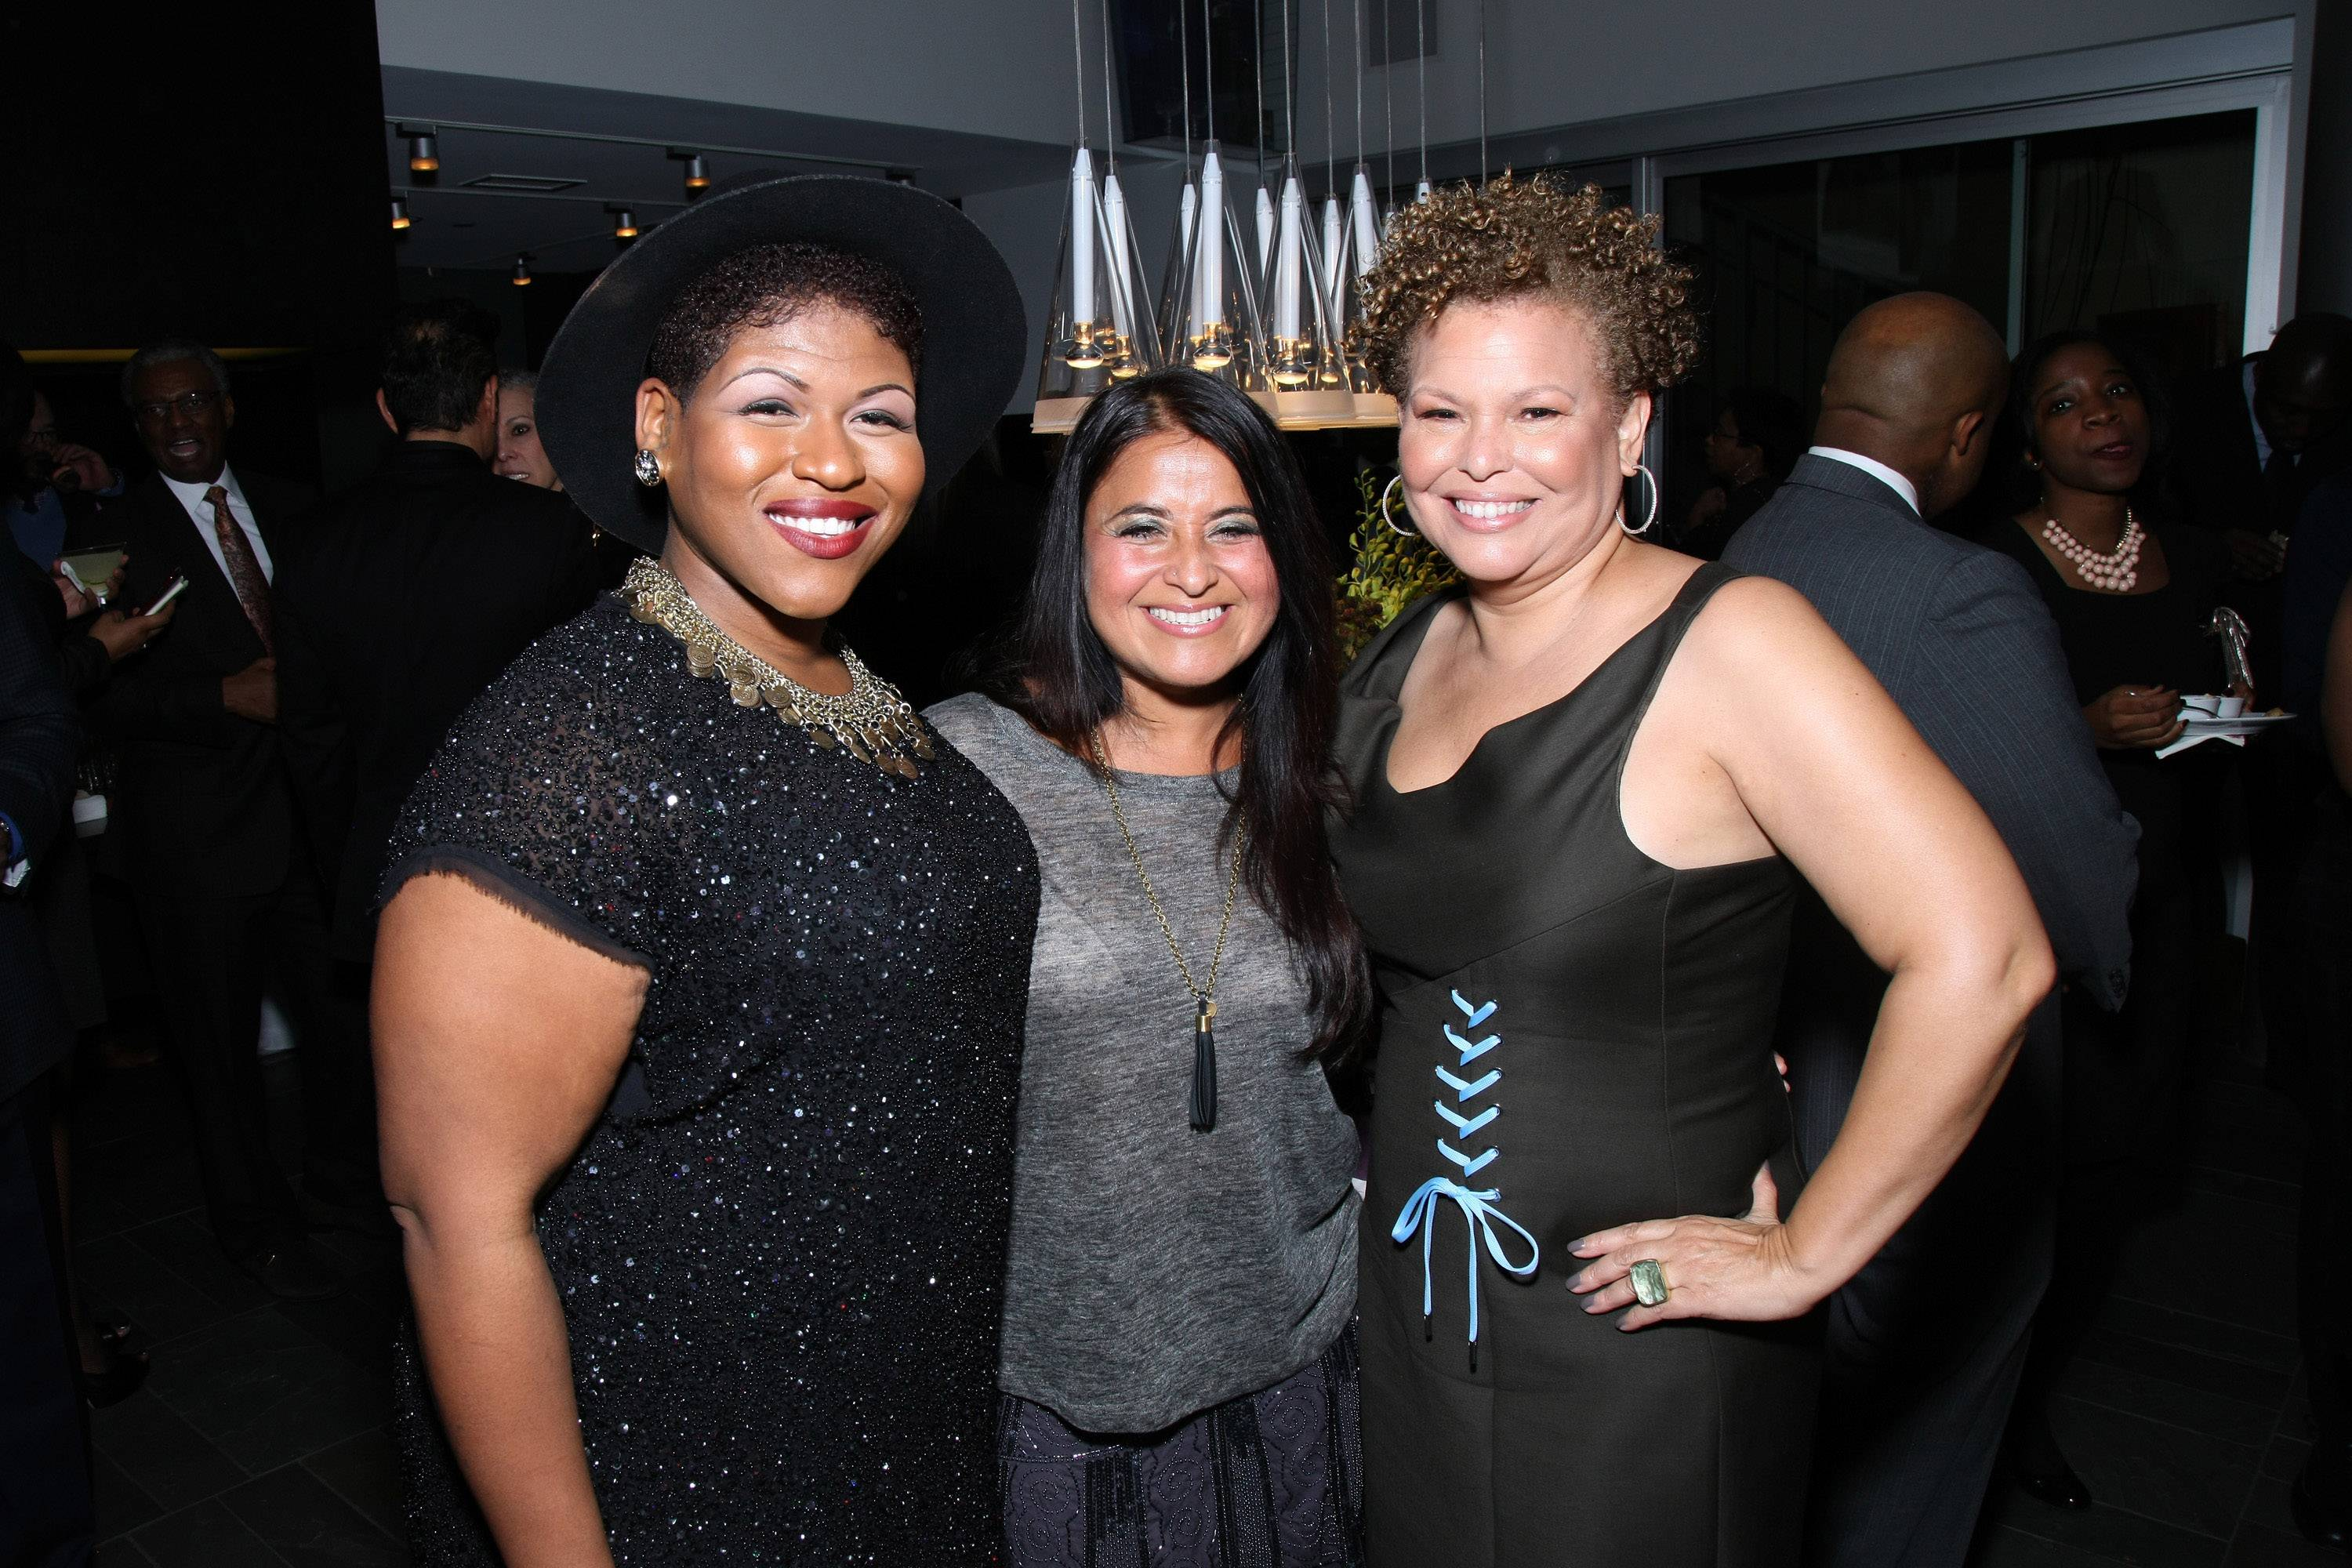 Ladies' Night Out - Stacy Barthe, Wanda Coriano and Debra L. Lee enjoy a ladies' night out.(Photo: Bennett Raglin/BET/Getty Images for BET)